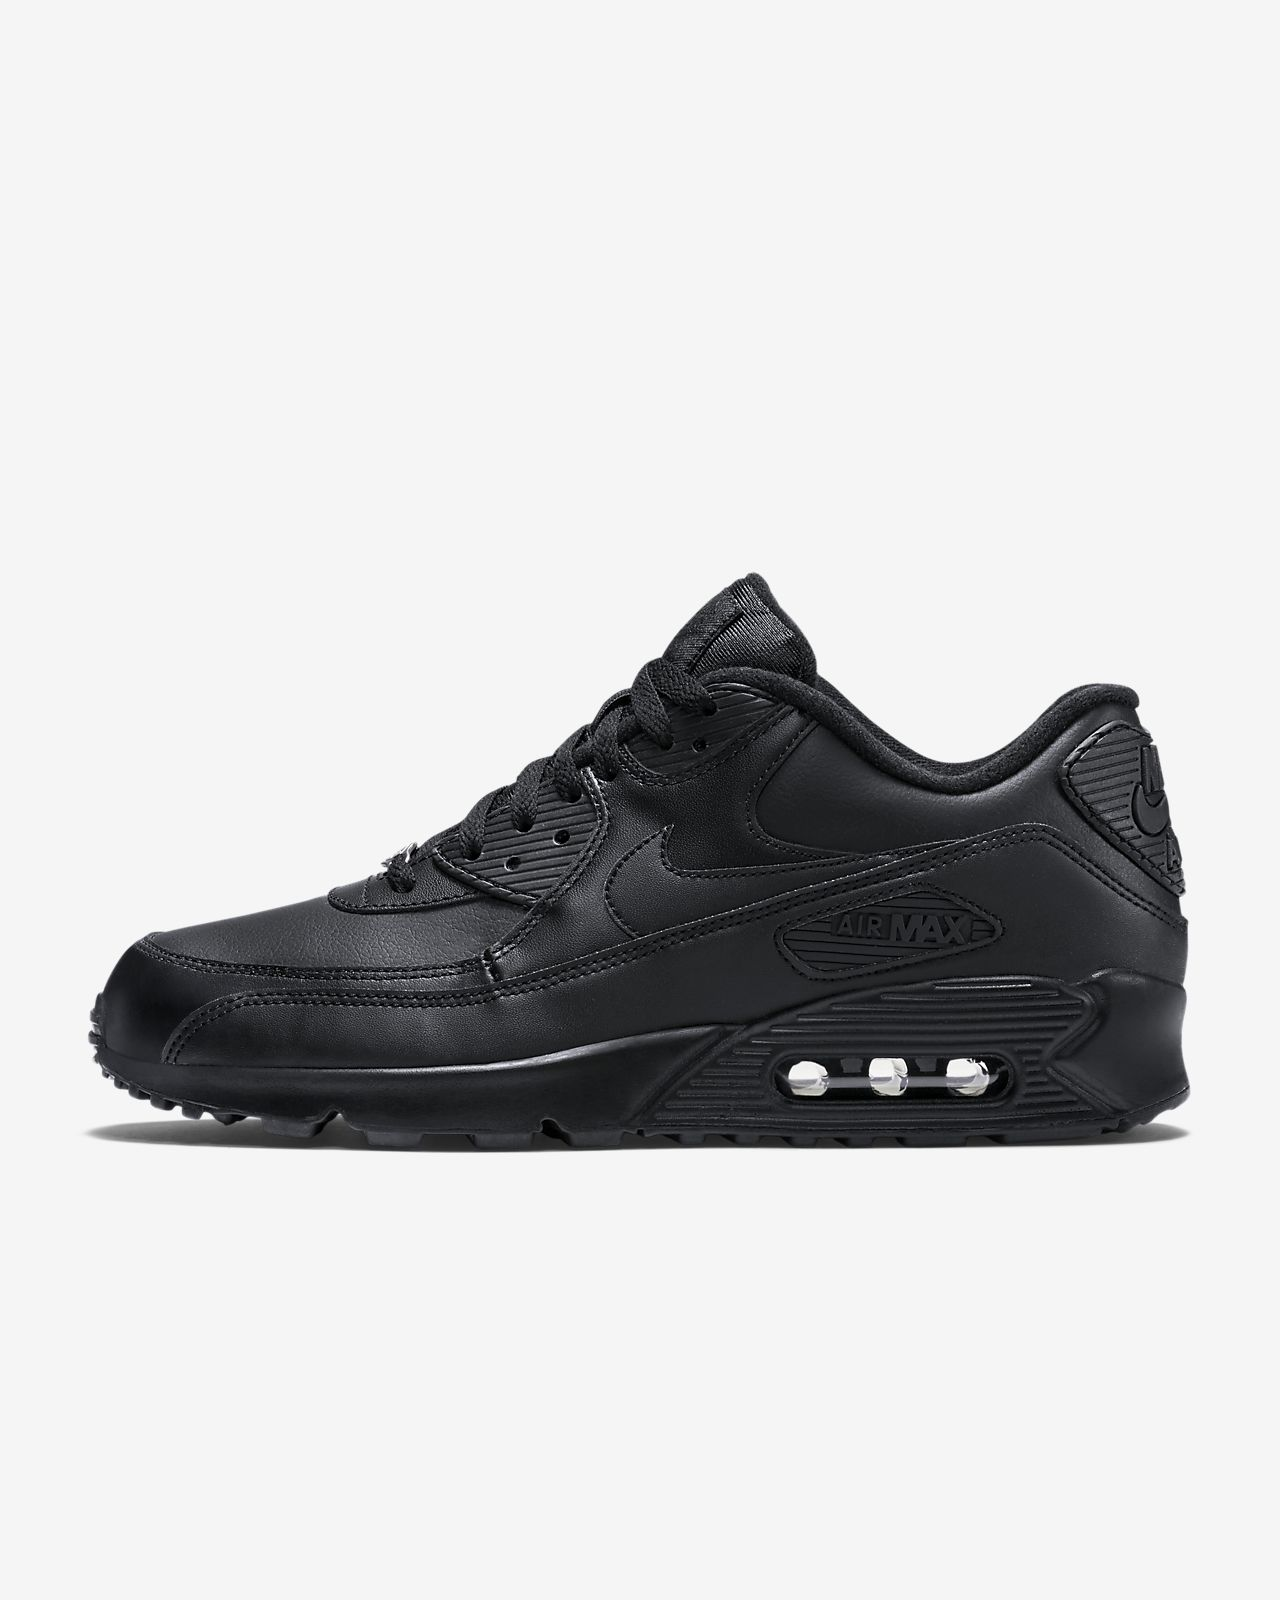 9a92cea108eb Nike Air Max 90 Leather Men s Shoe. Nike.com GB